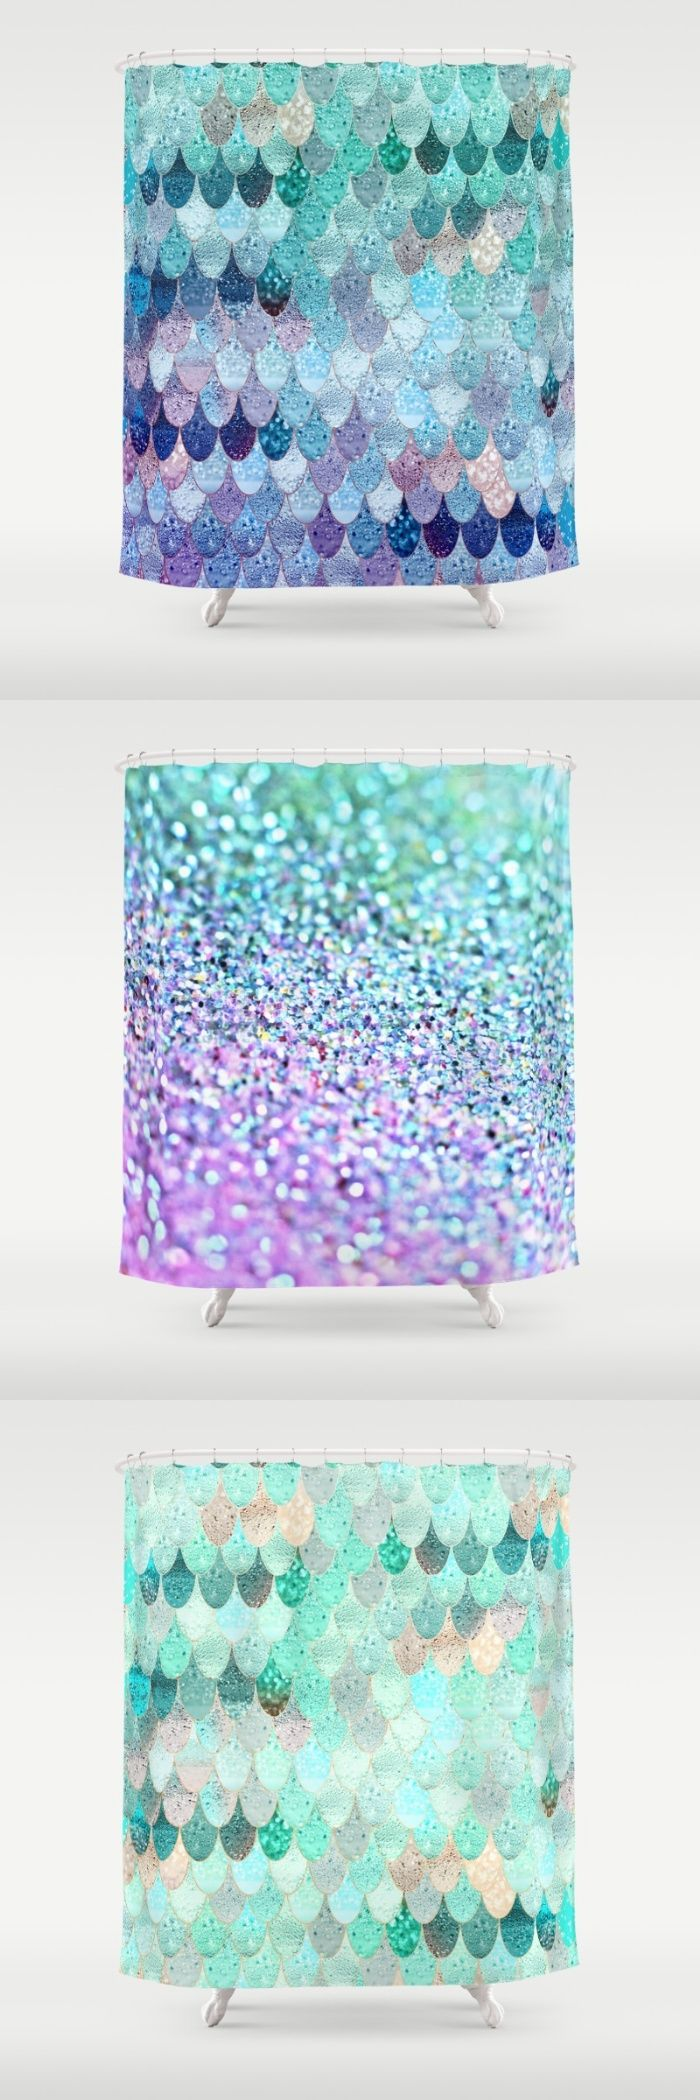 Everything mermaid ....... $68  Find the cutest mermaid showercurtains in my S6 shop and more home decor for mermaids at heart!  #mermaid #mermaidroom #mermaidscales #showercurtain #bathroom #deco #homedecor #mint #lilac #scales #fishscales #pattern #girls #shiny #bright #cute #purple #blue #monikastrigel #society6 #denydesigns #mermaidbathroomdecor